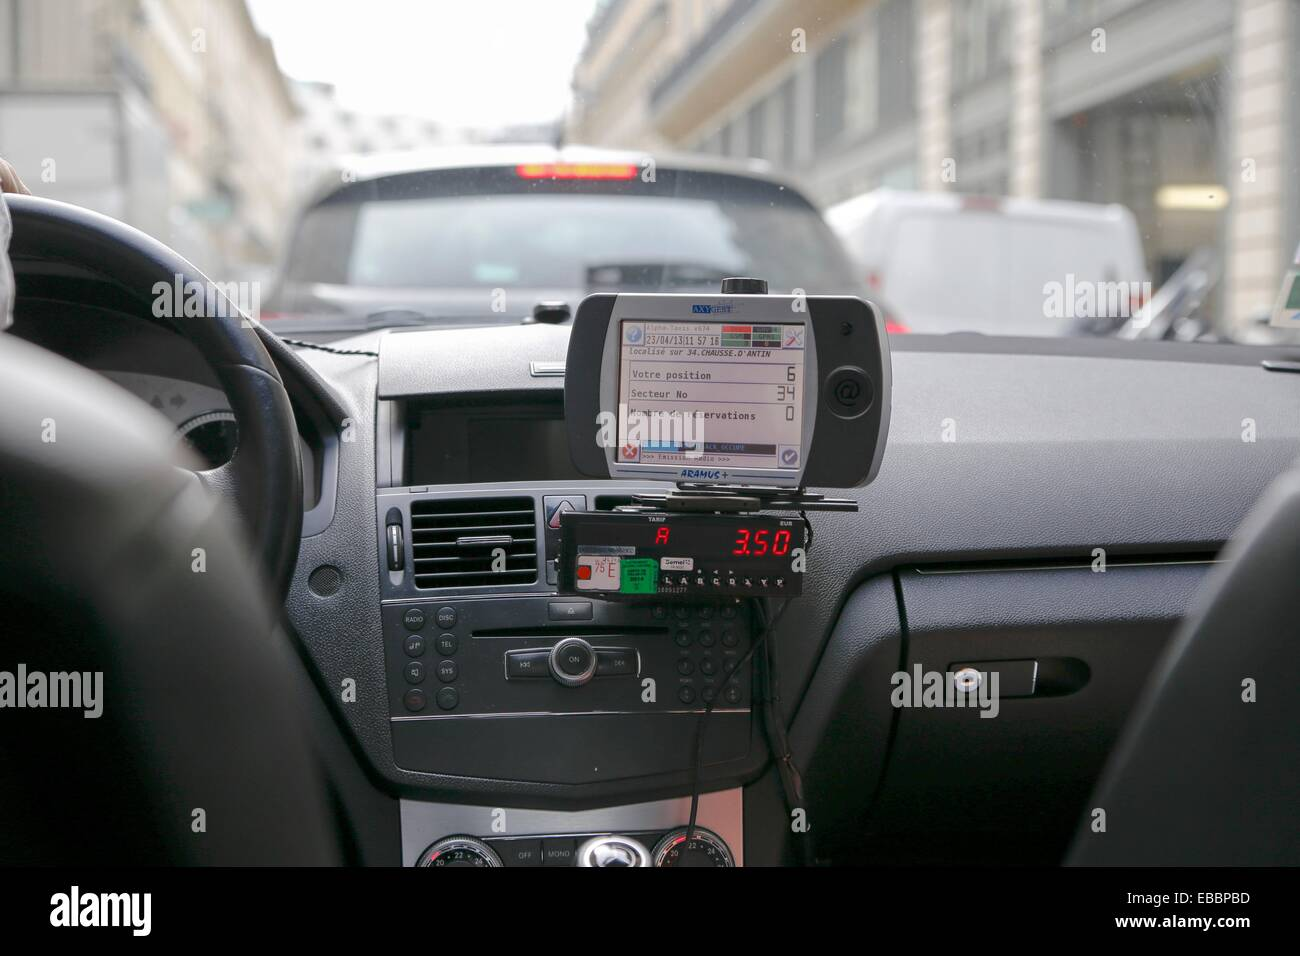 Taxi Meters Purchase : Running taxi meter as seen from the back seat paris